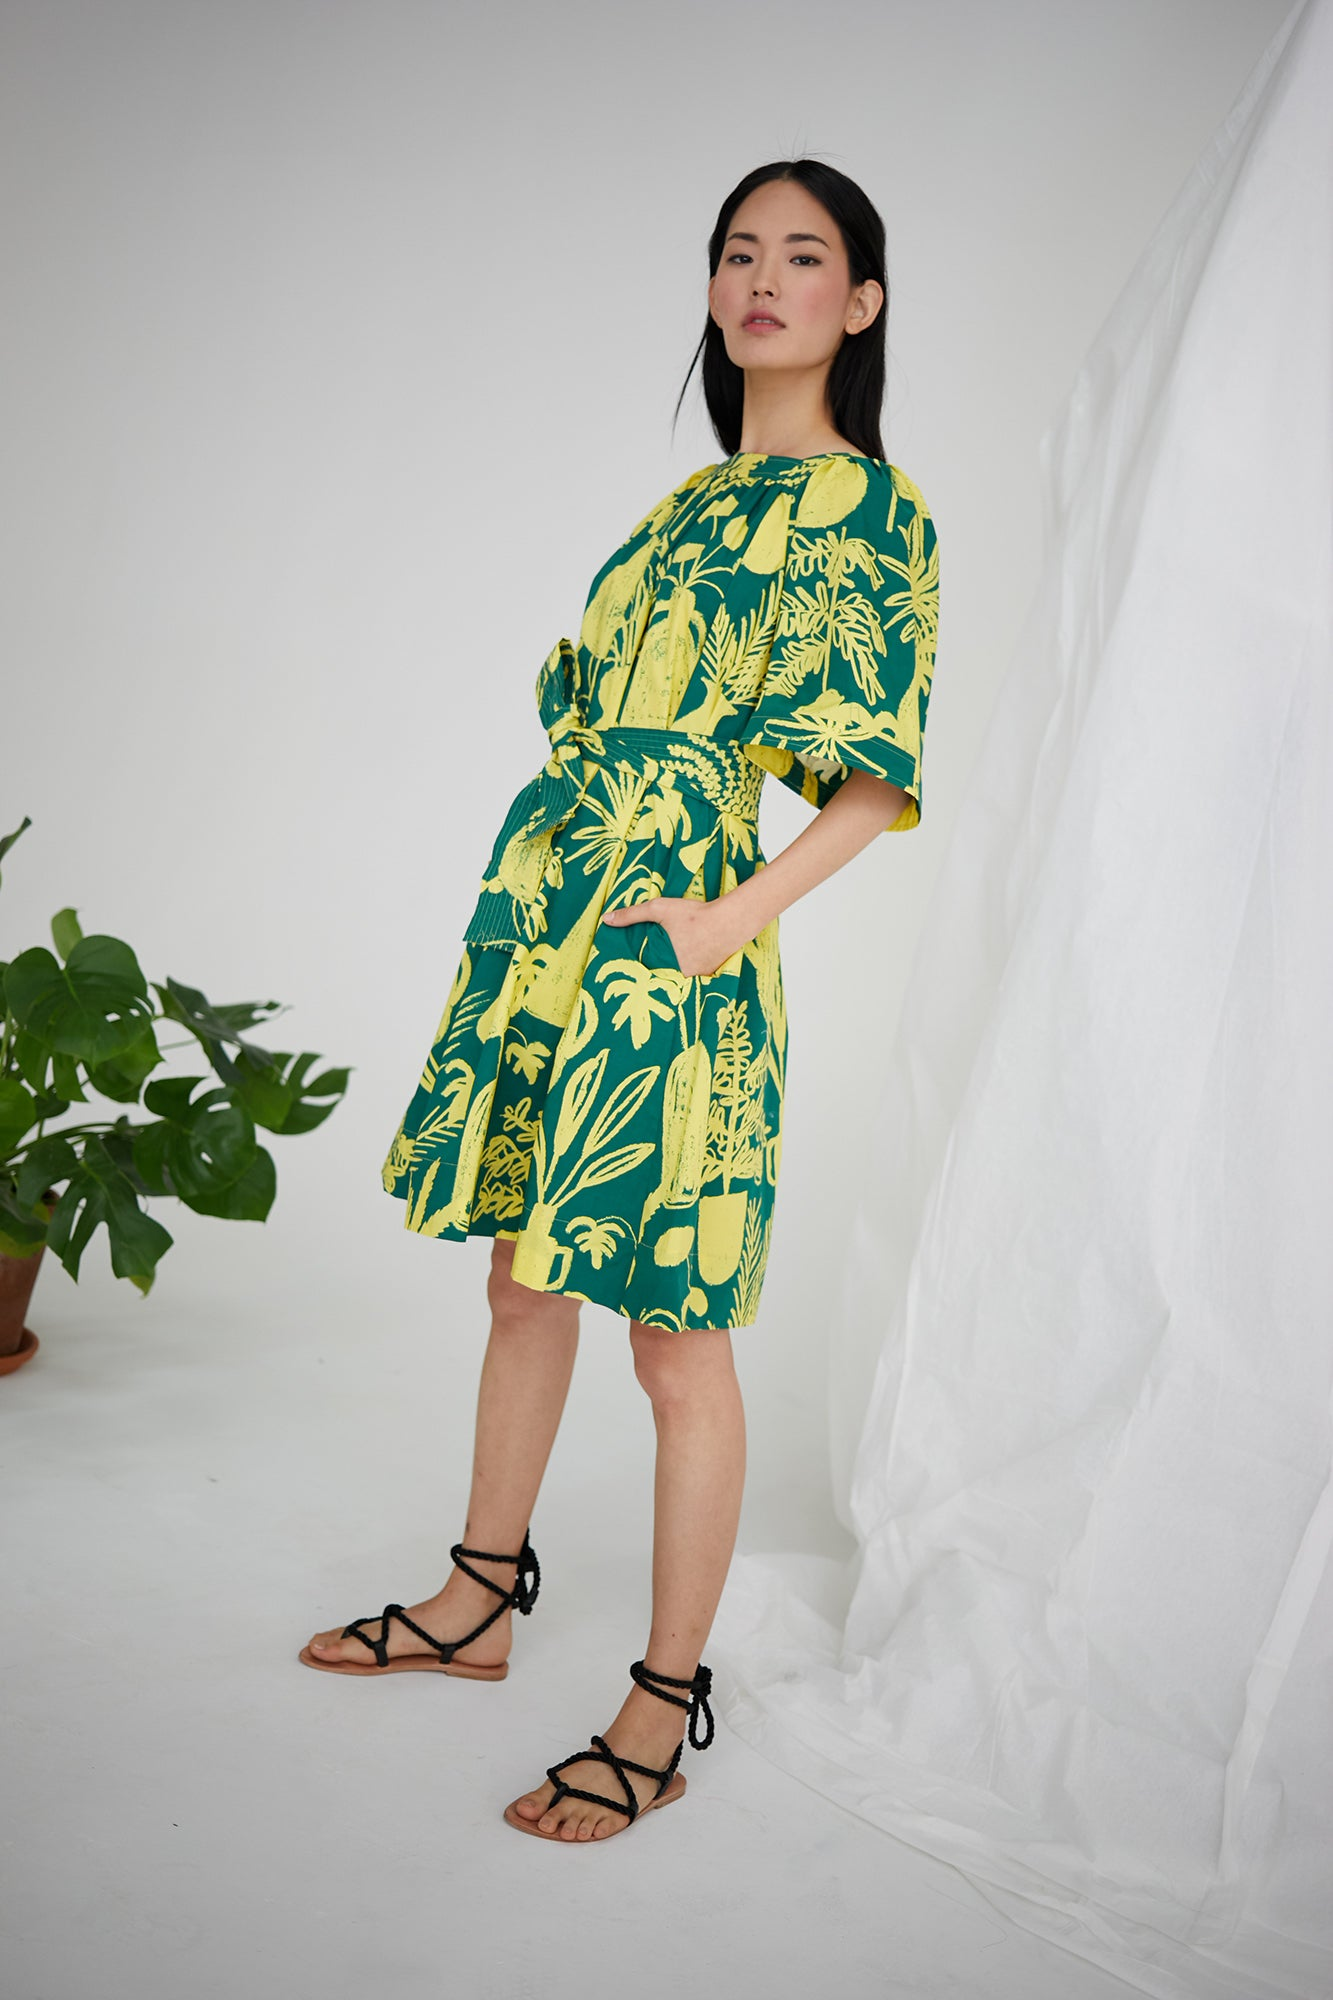 Mira Dress in Potted Plant Print Green/Yellow